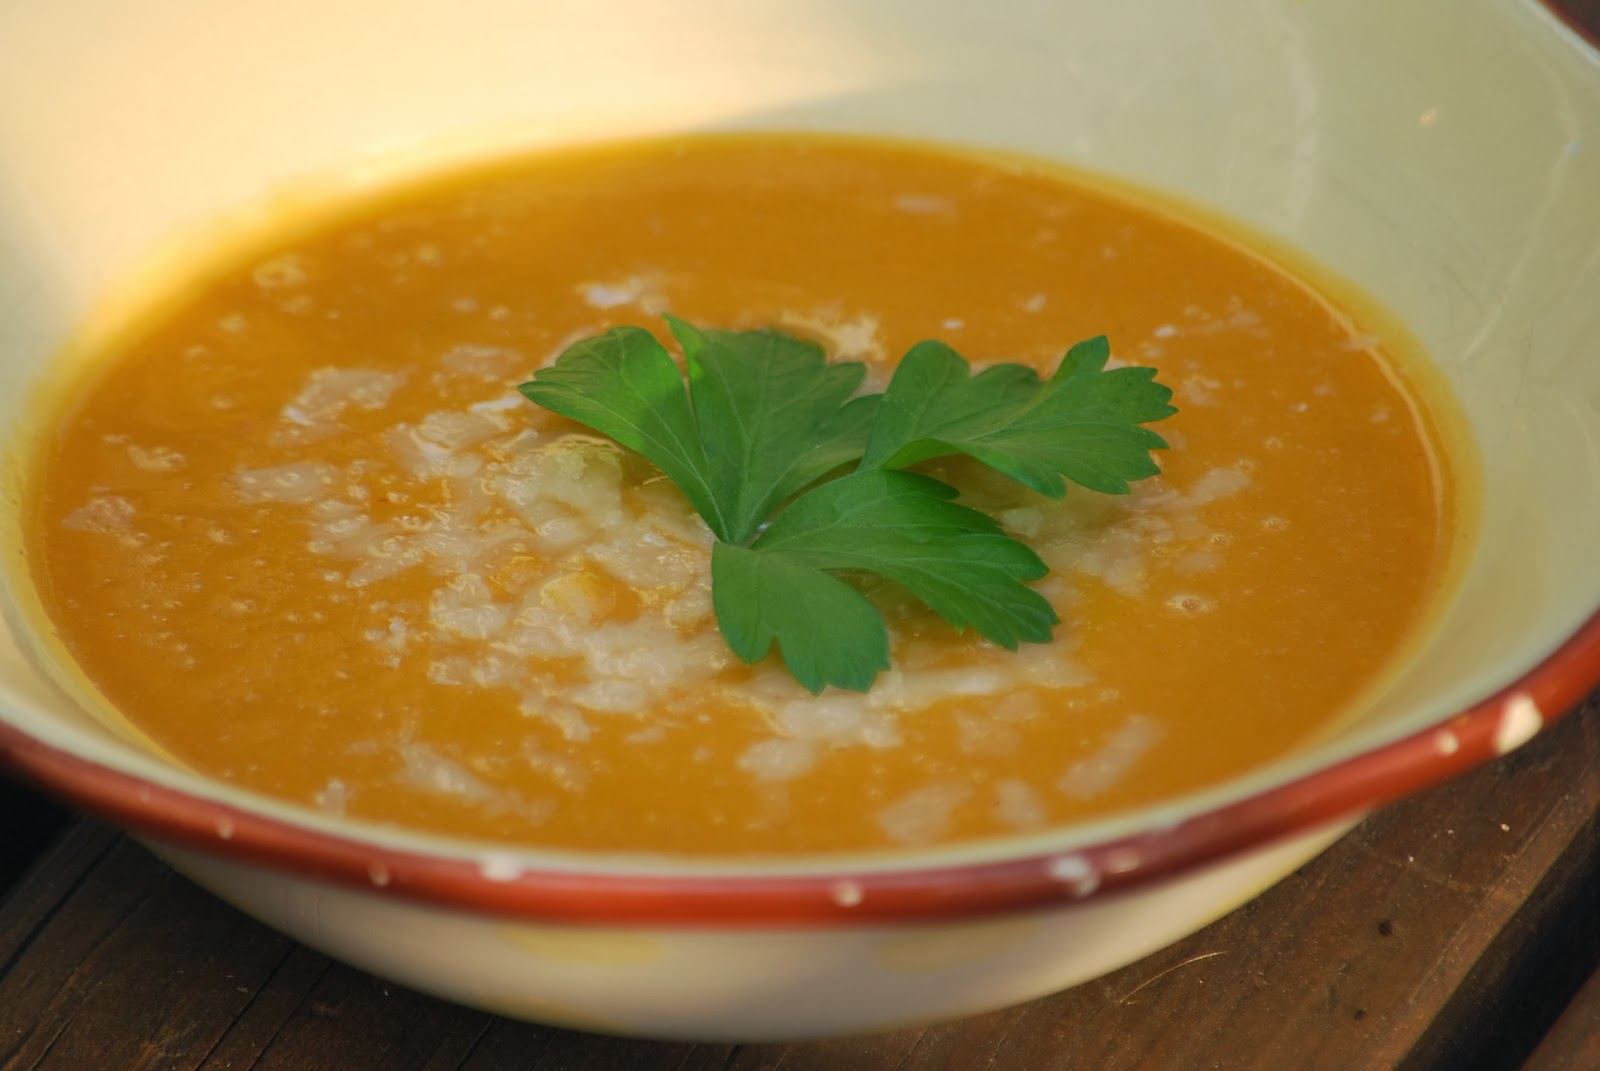 My story in recipes: Sweet Potato Soup